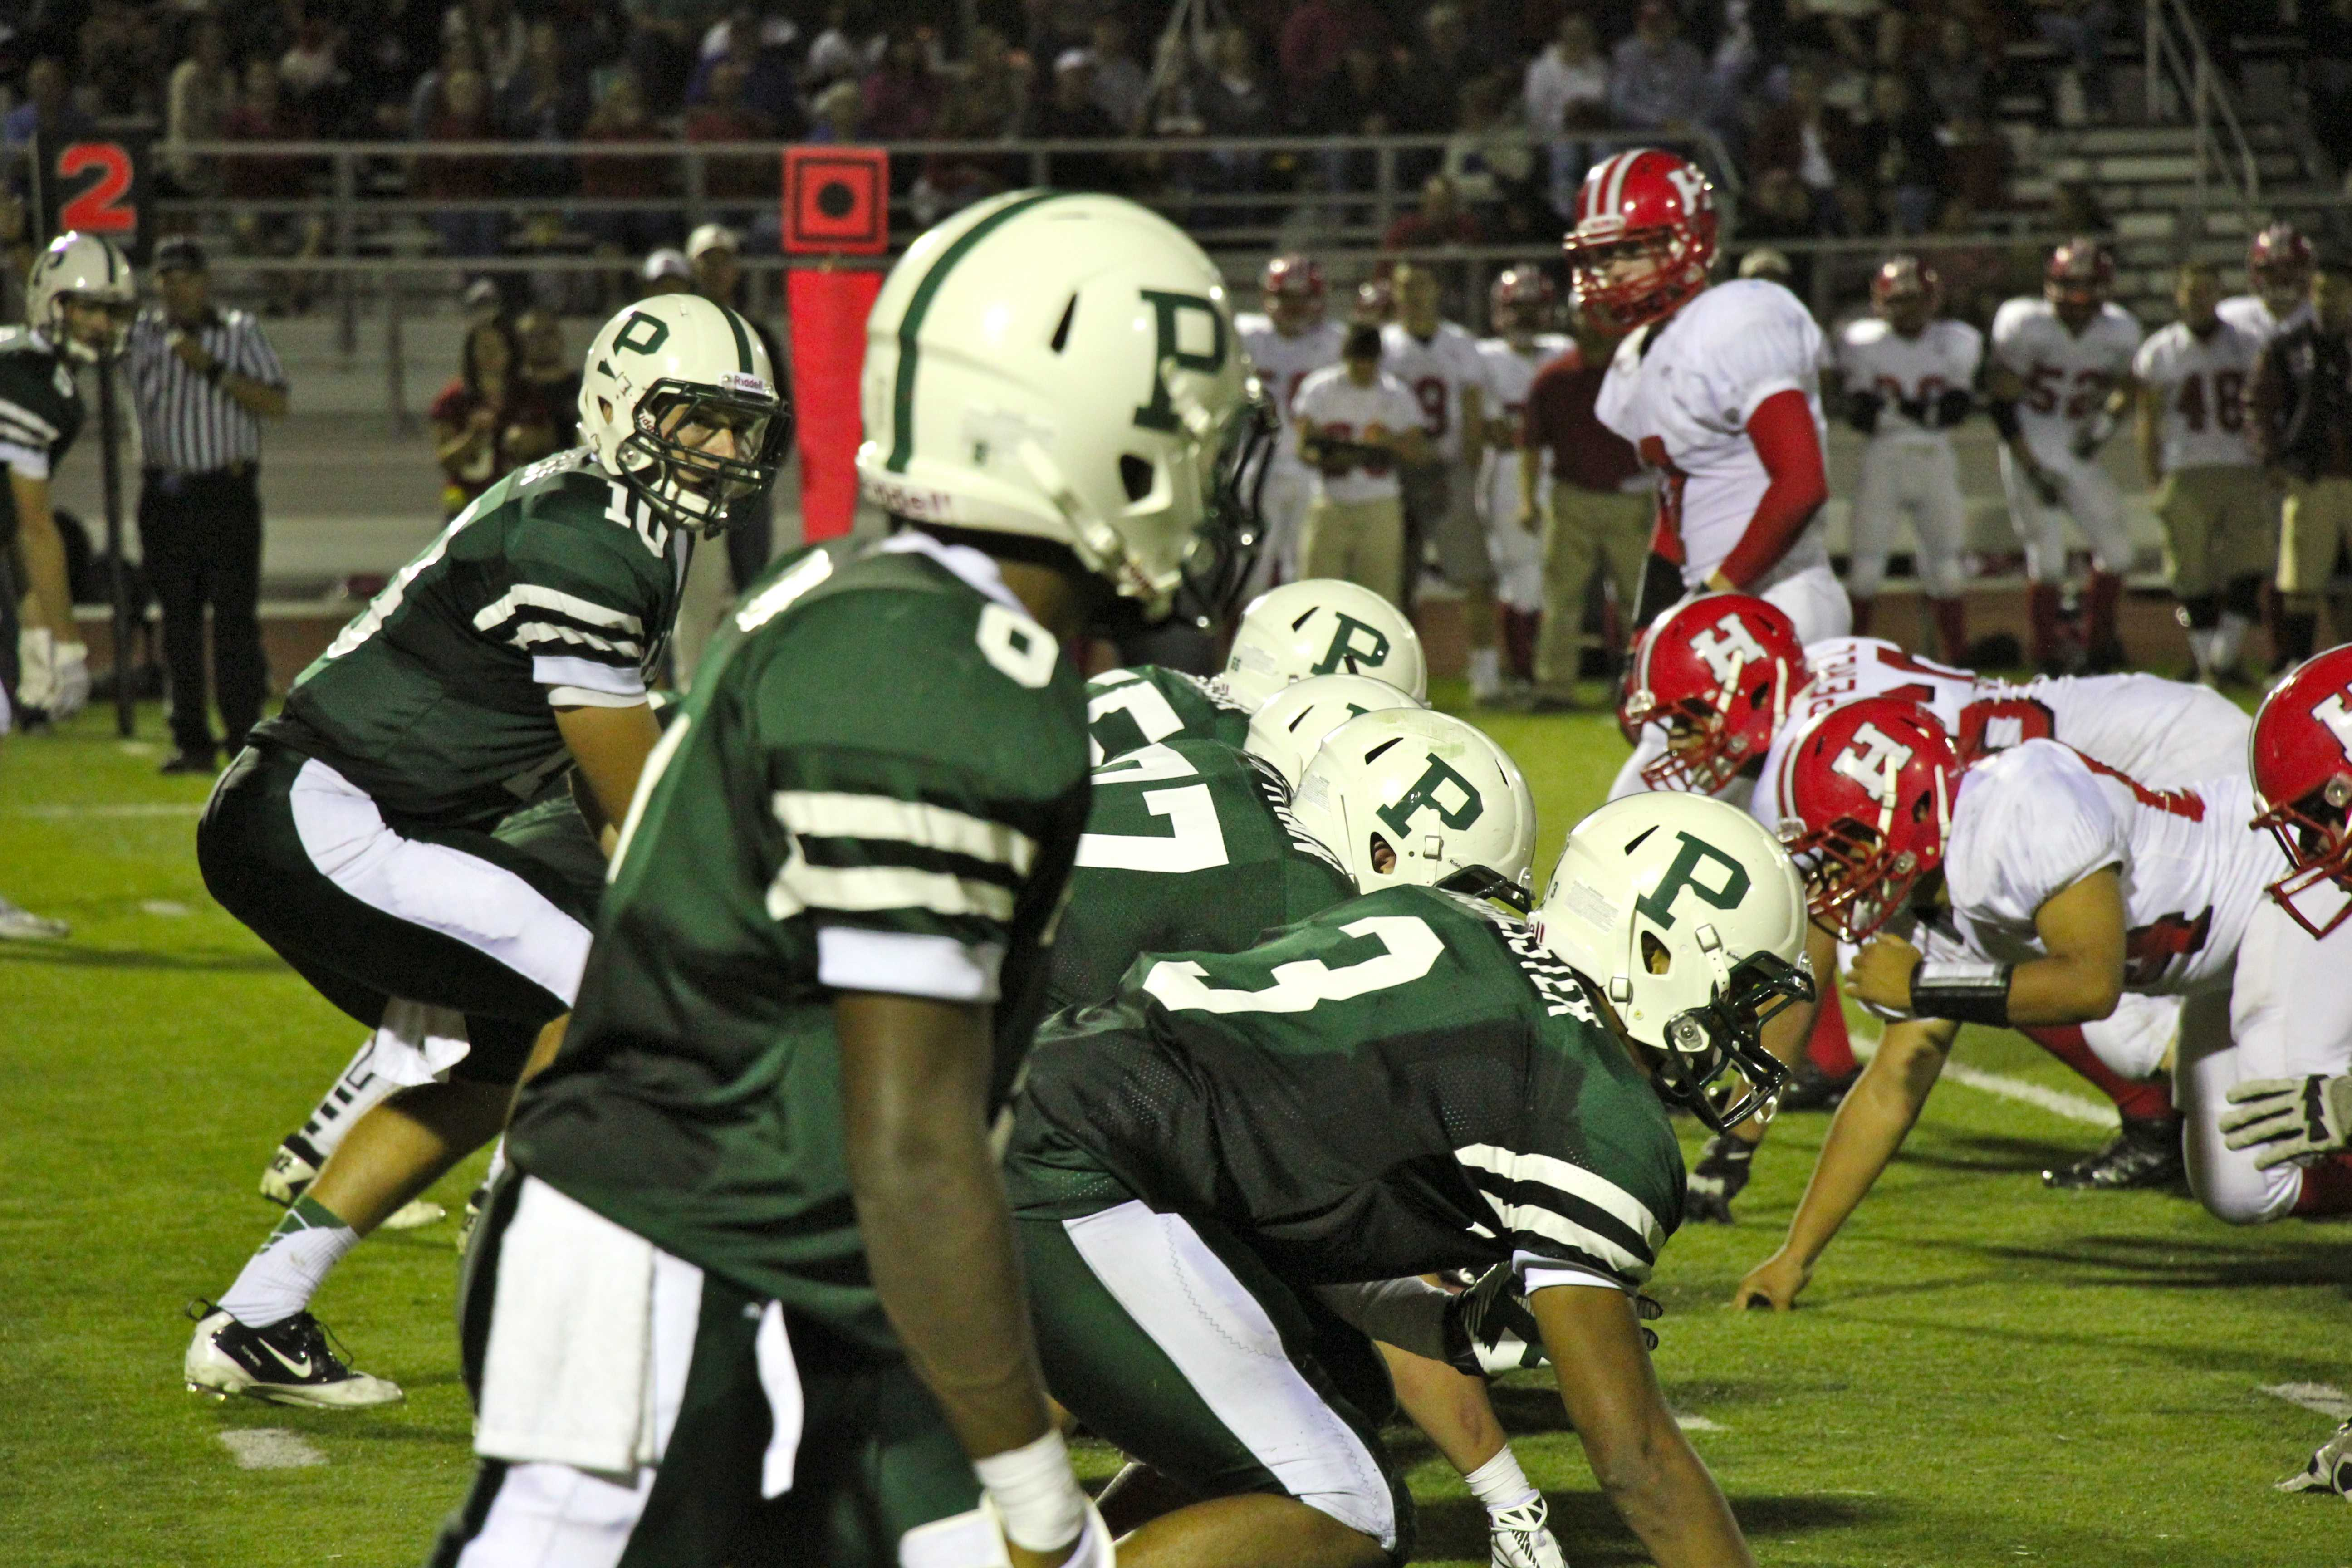 The Palo Alto High School varsity football team lines up on second down. Photo by Scott Andrews